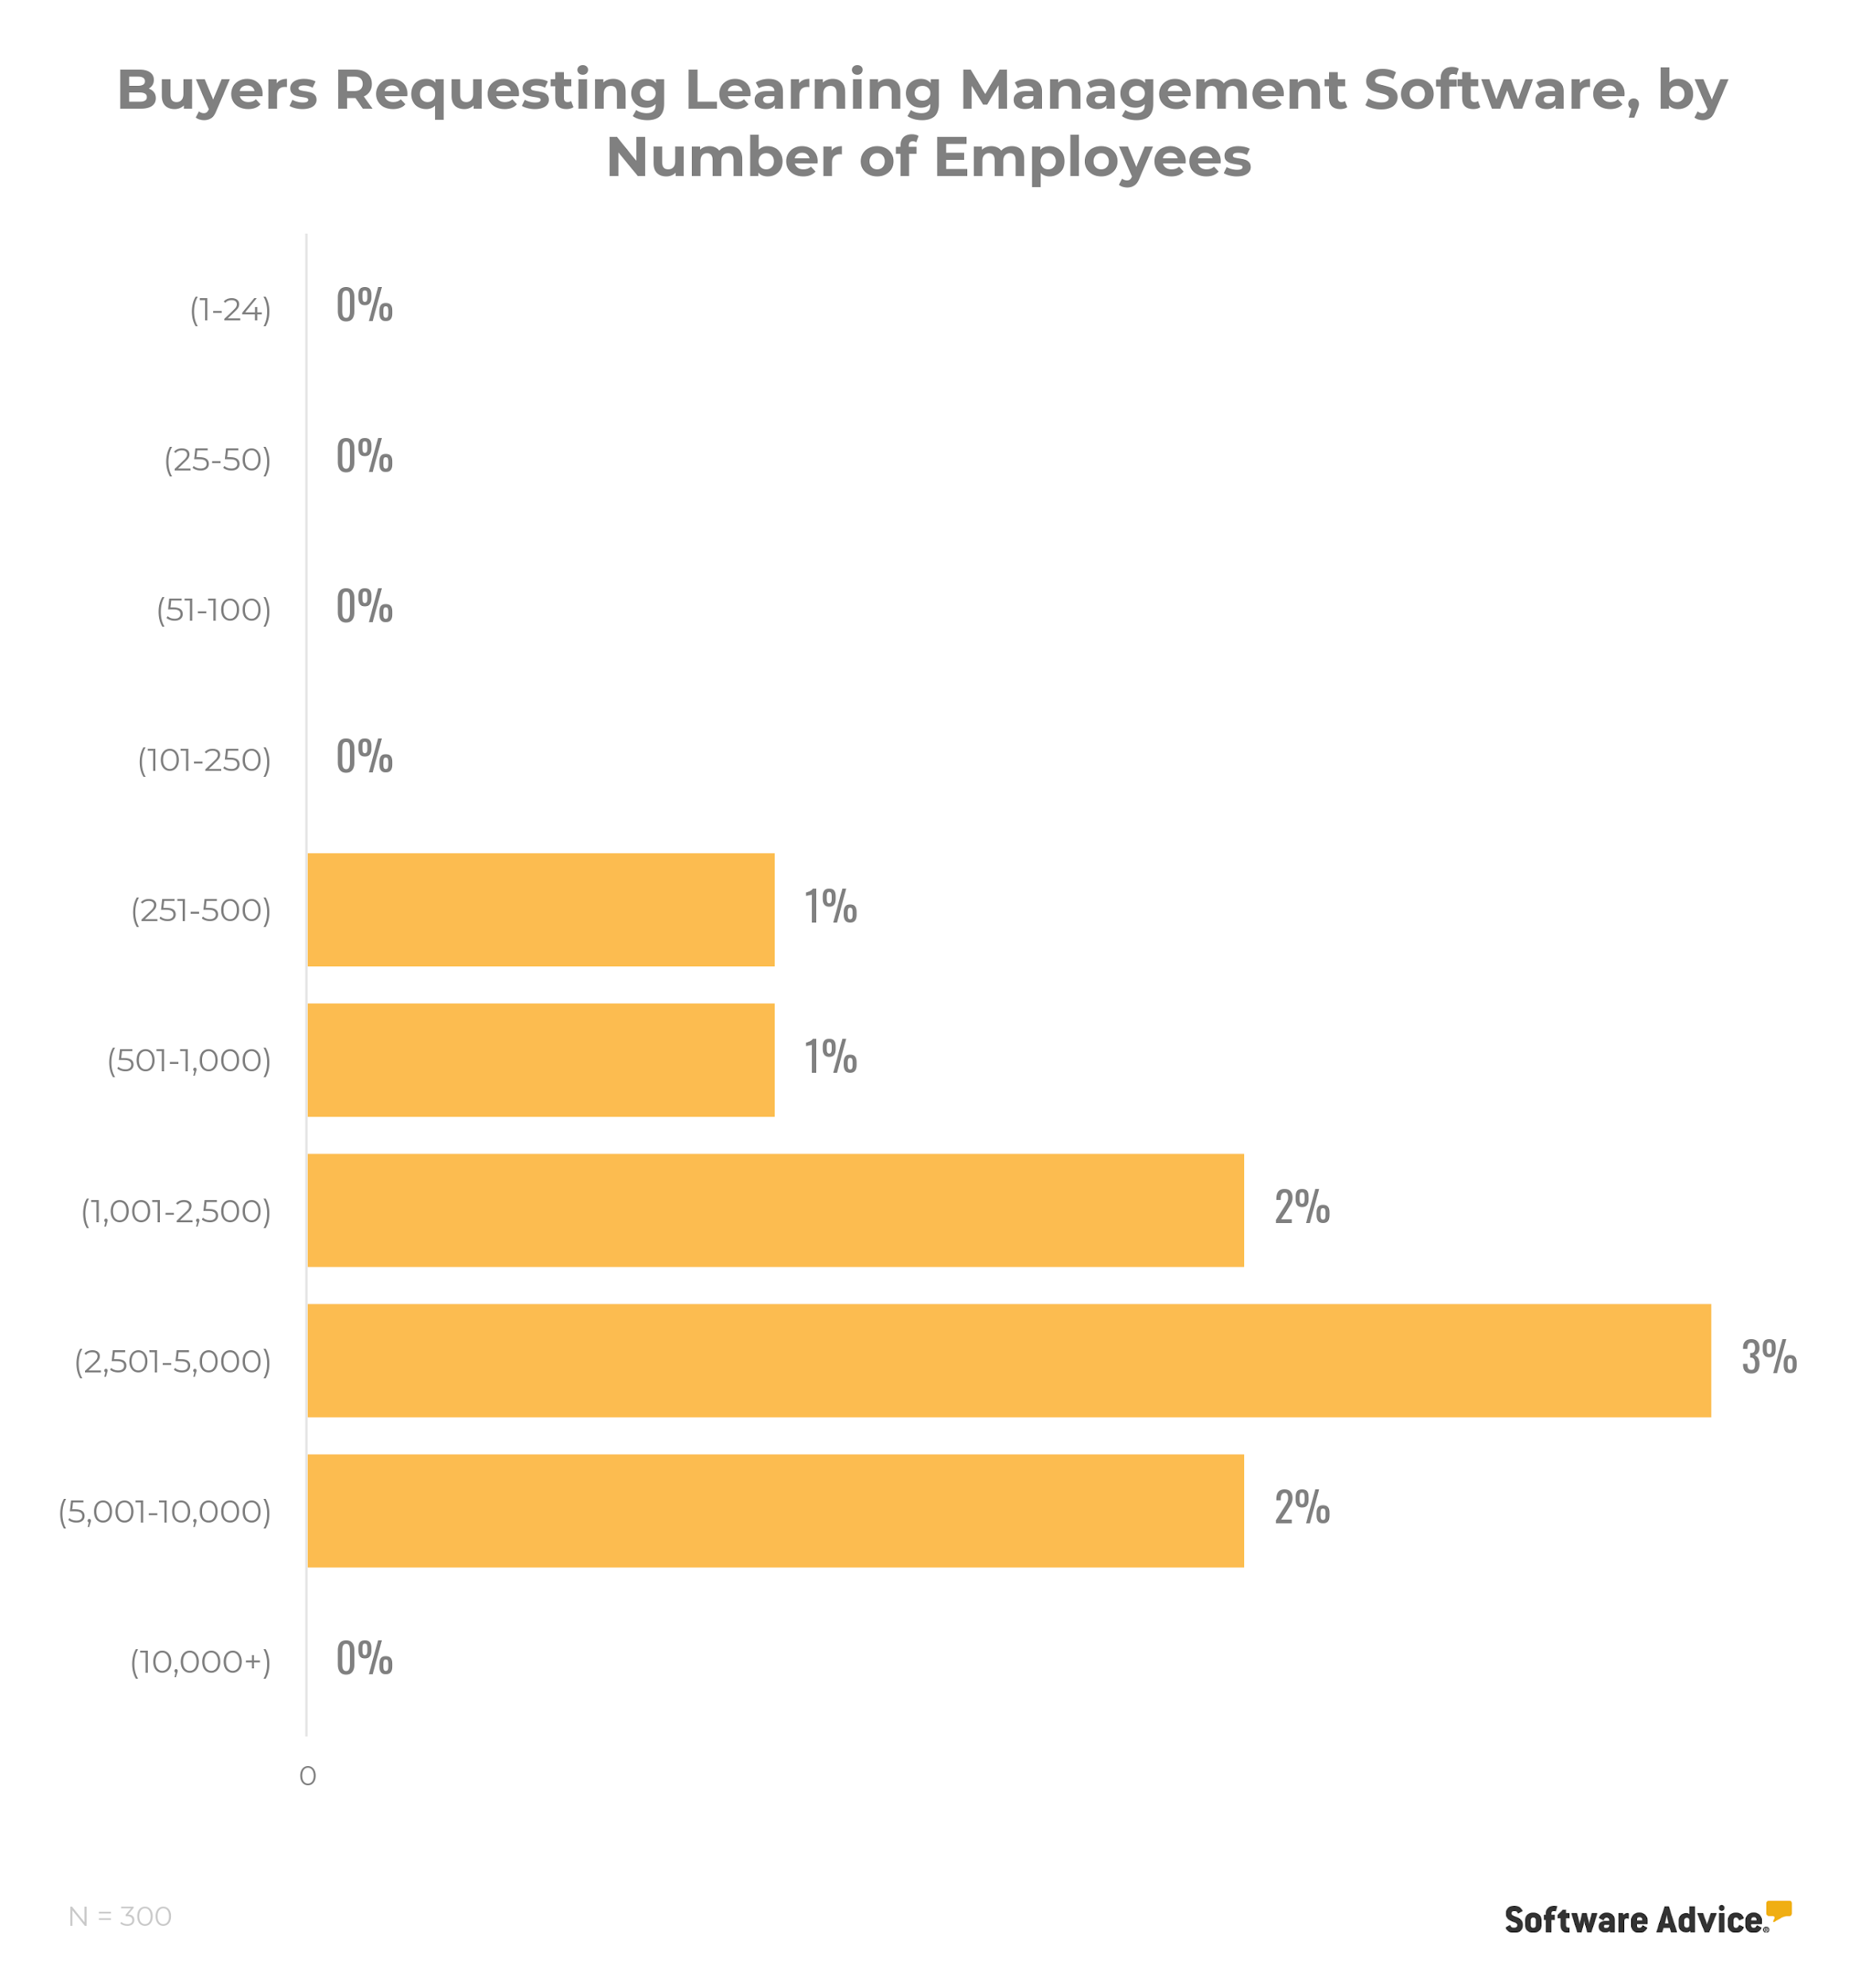 chart showing that purchases of LMS tools only begin when businesses have 251 to 10,000 employees—and even then, very few buyers indicated an interest in learning management functionality